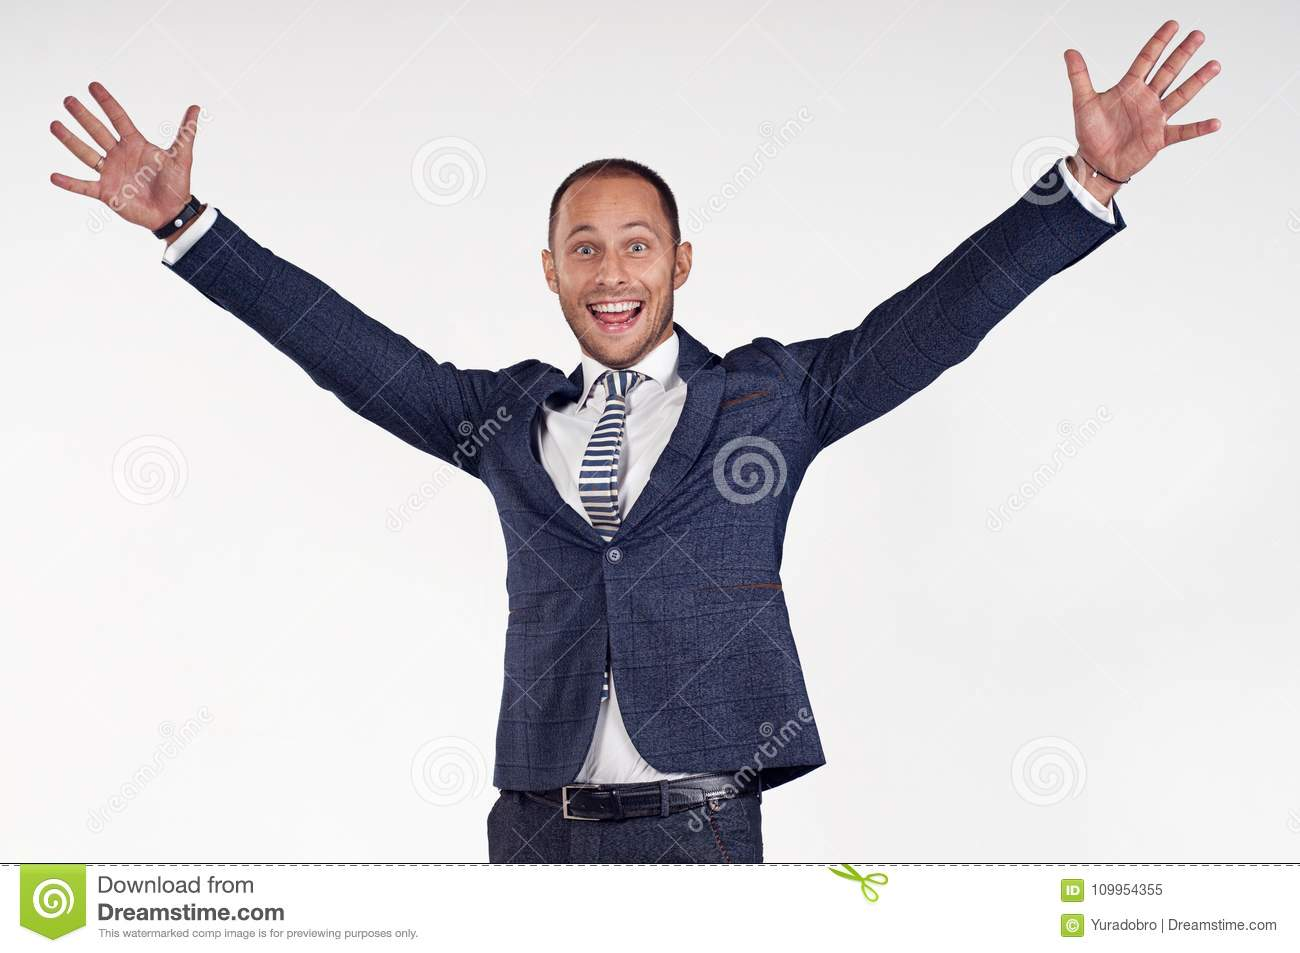 A young man is happy to lift his arms up. The guy is surprised.